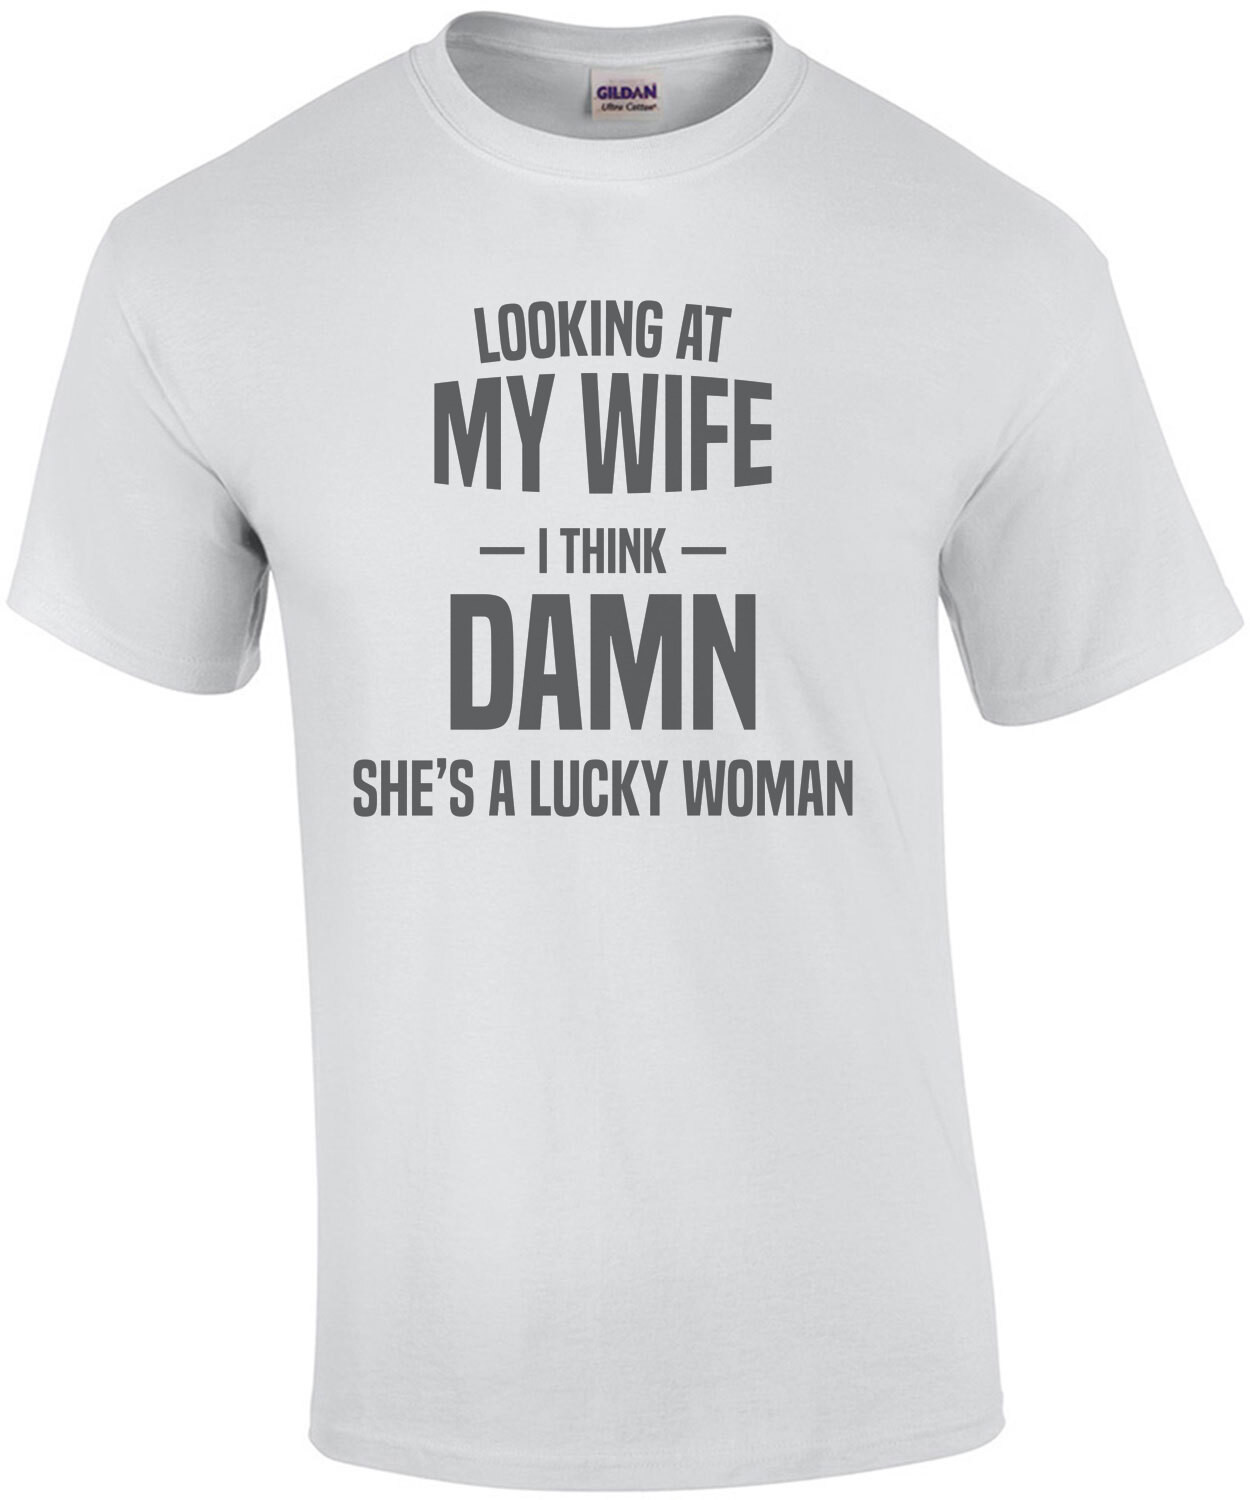 Looking at my wife - I think - Damn she's a lucky woman - funny t-shirt